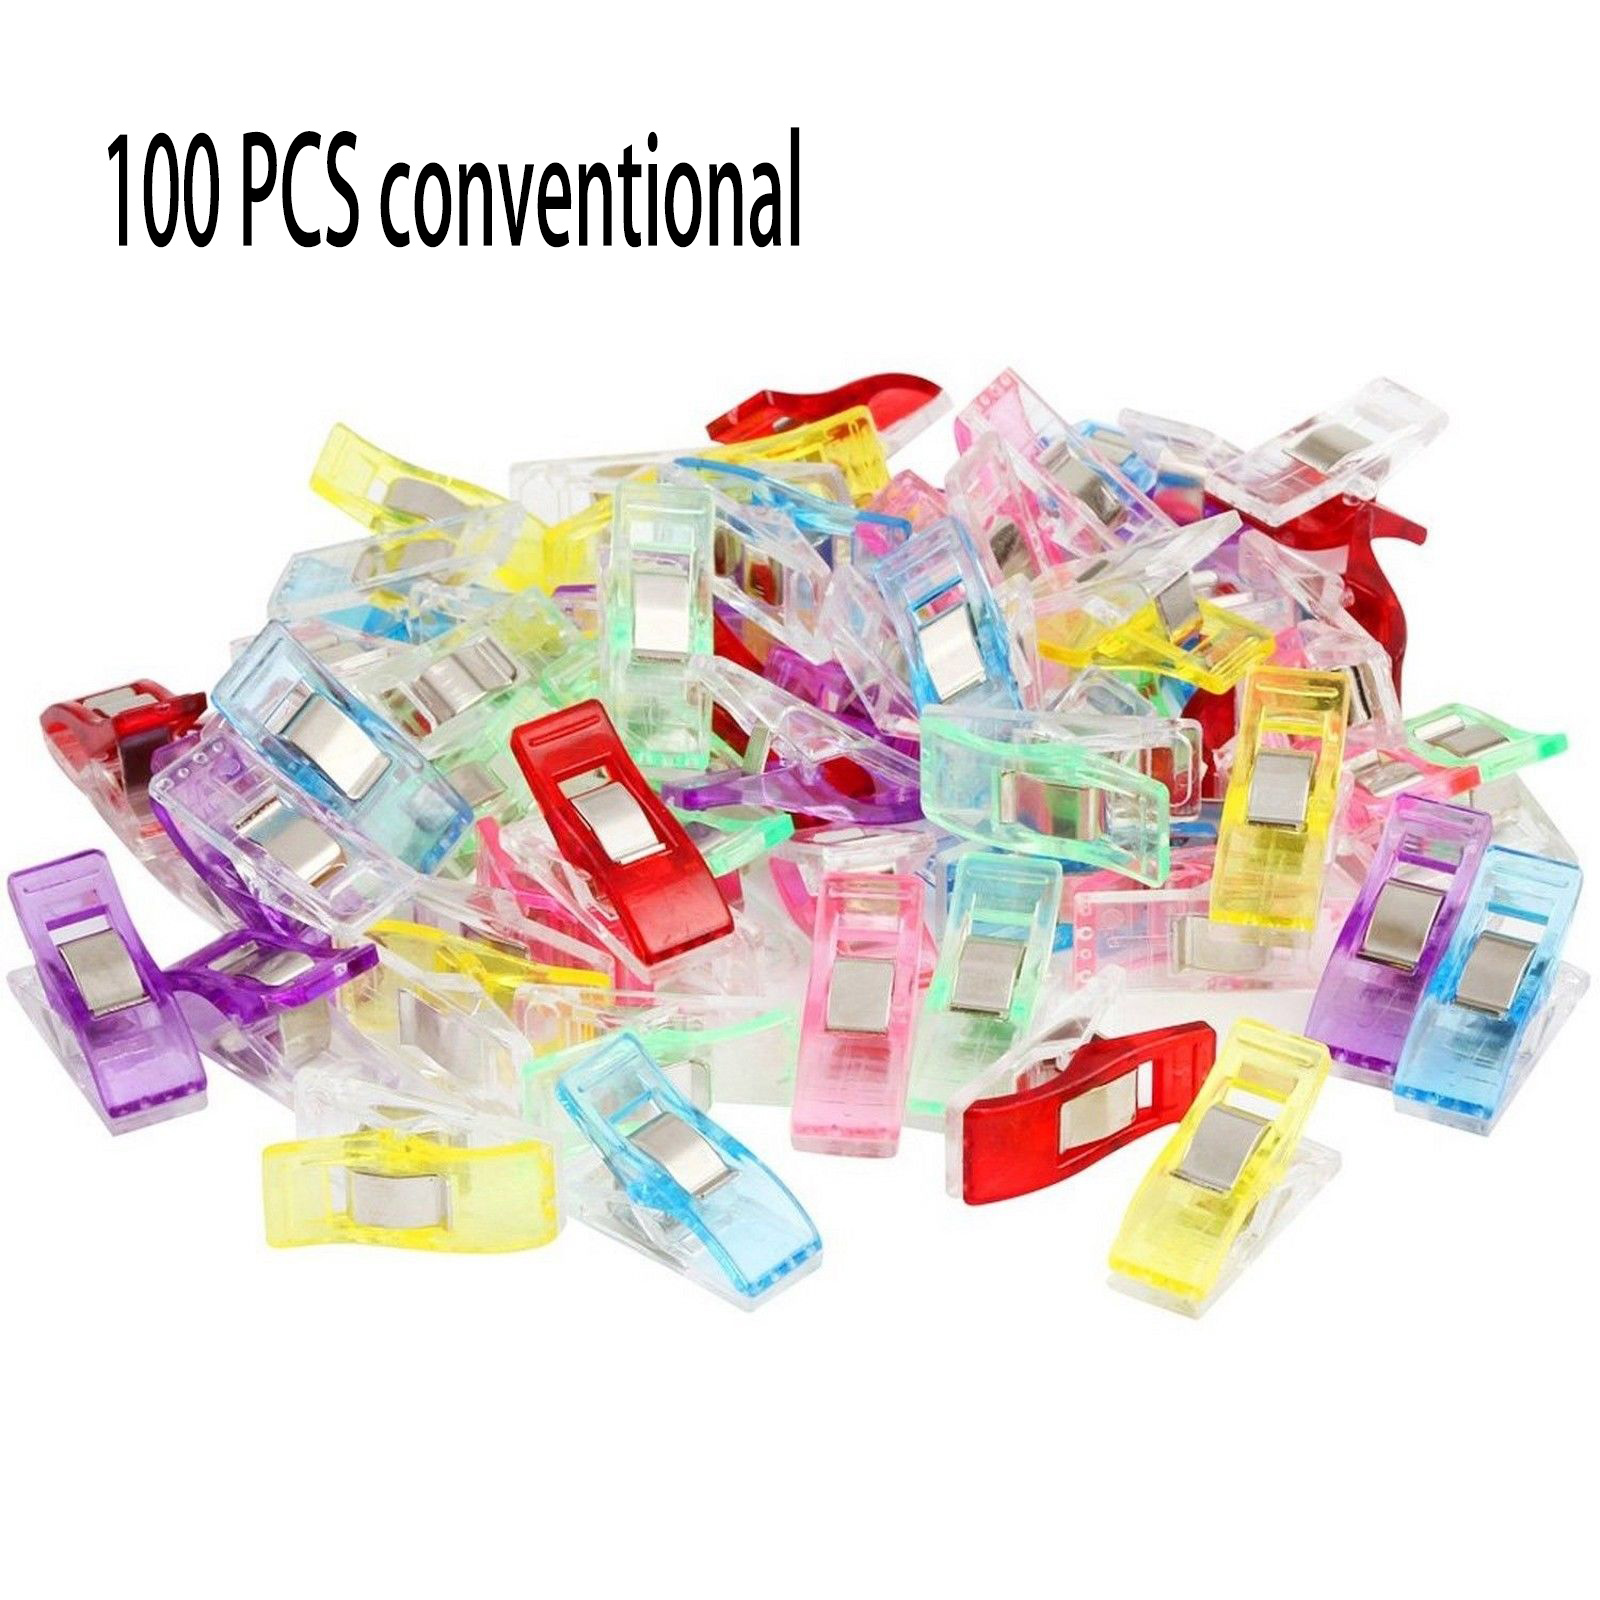 Lot 20 Colorful Wonder Clips for Fabric Quilting Craft Sewing Knitting Crochet